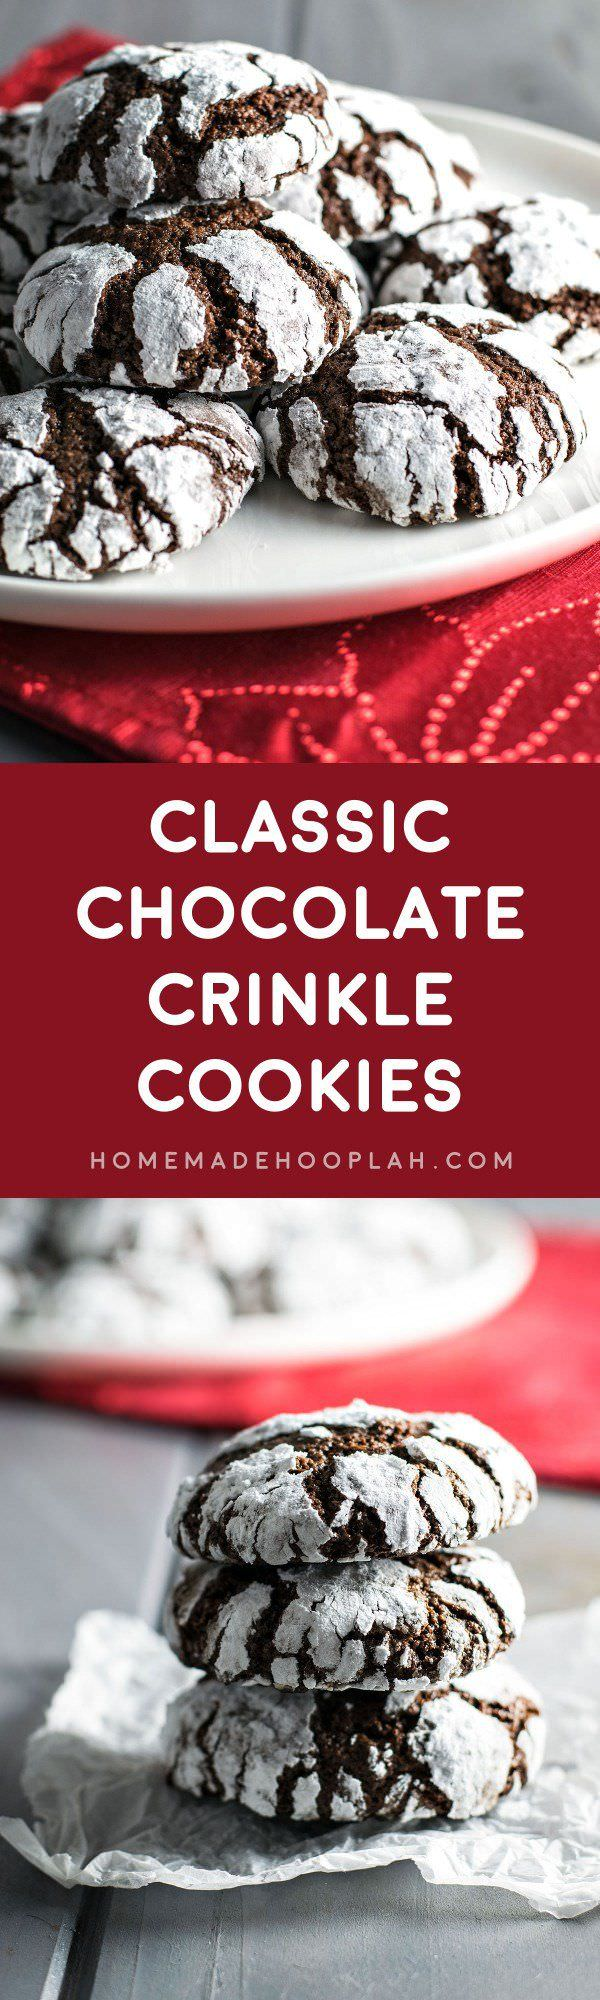 These chocolate crinkle cookies are classic and the perfect combination of a brownie and a cookie. Check out!